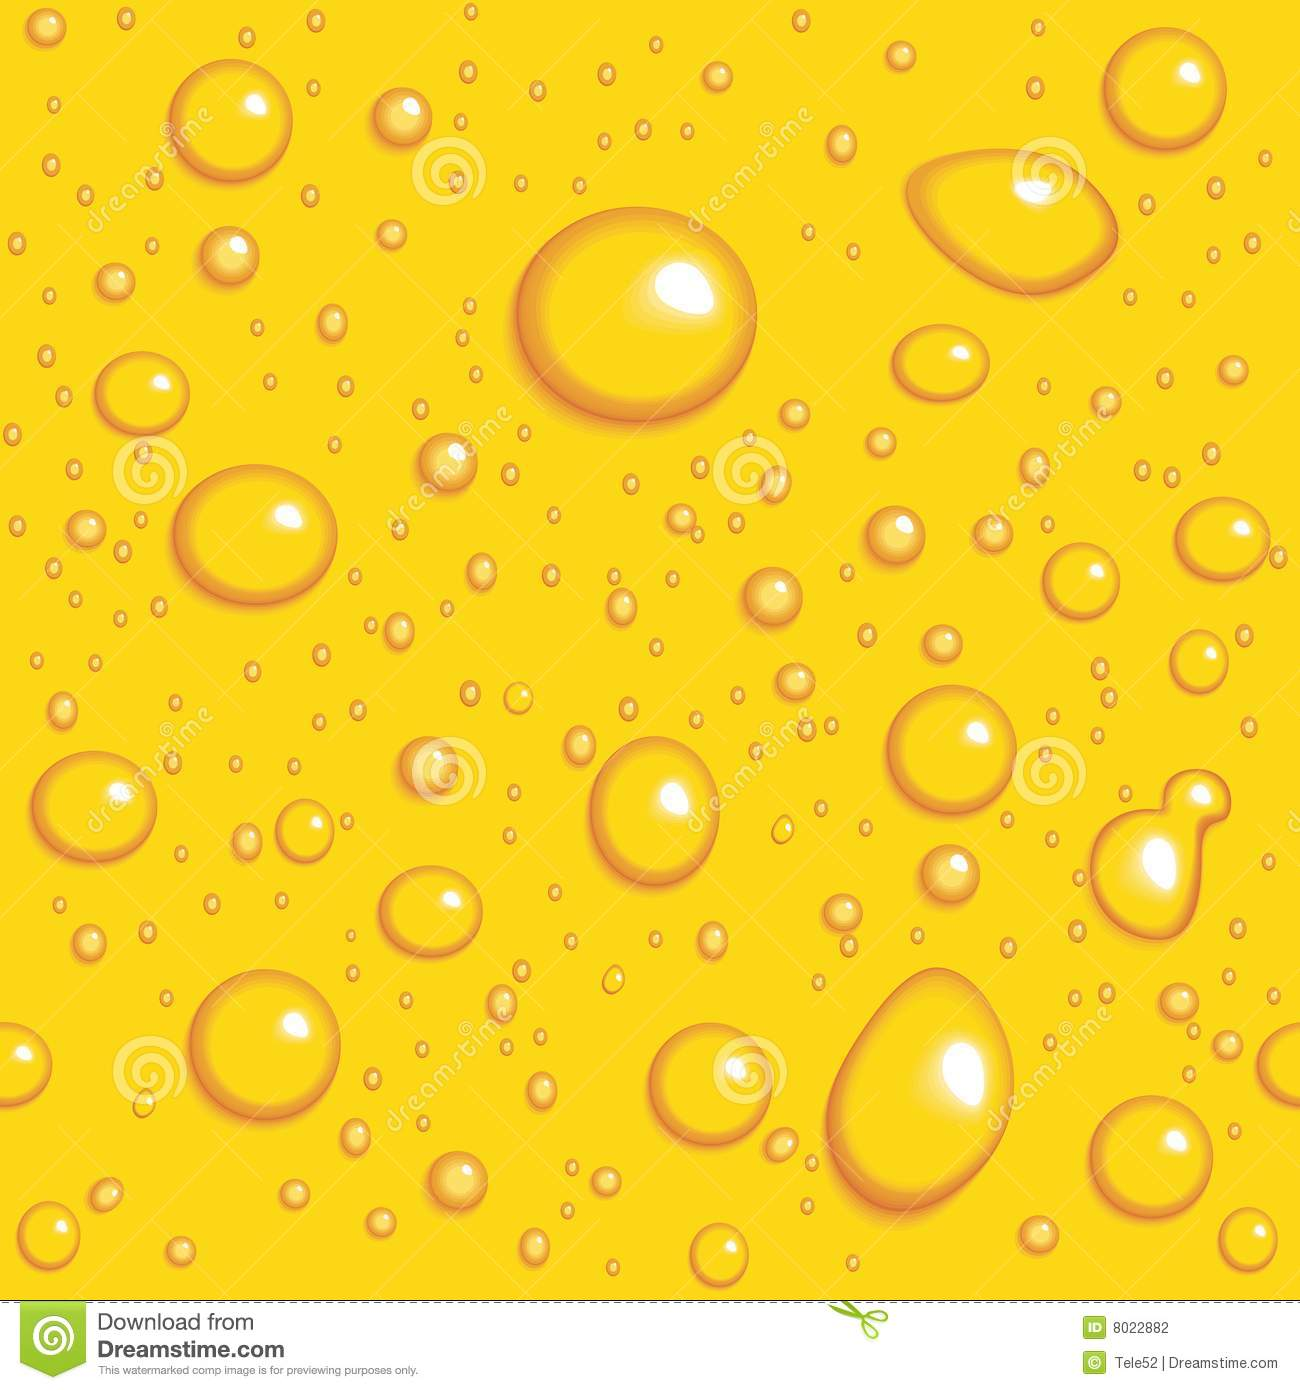 Seamless vector background. Yellow drops